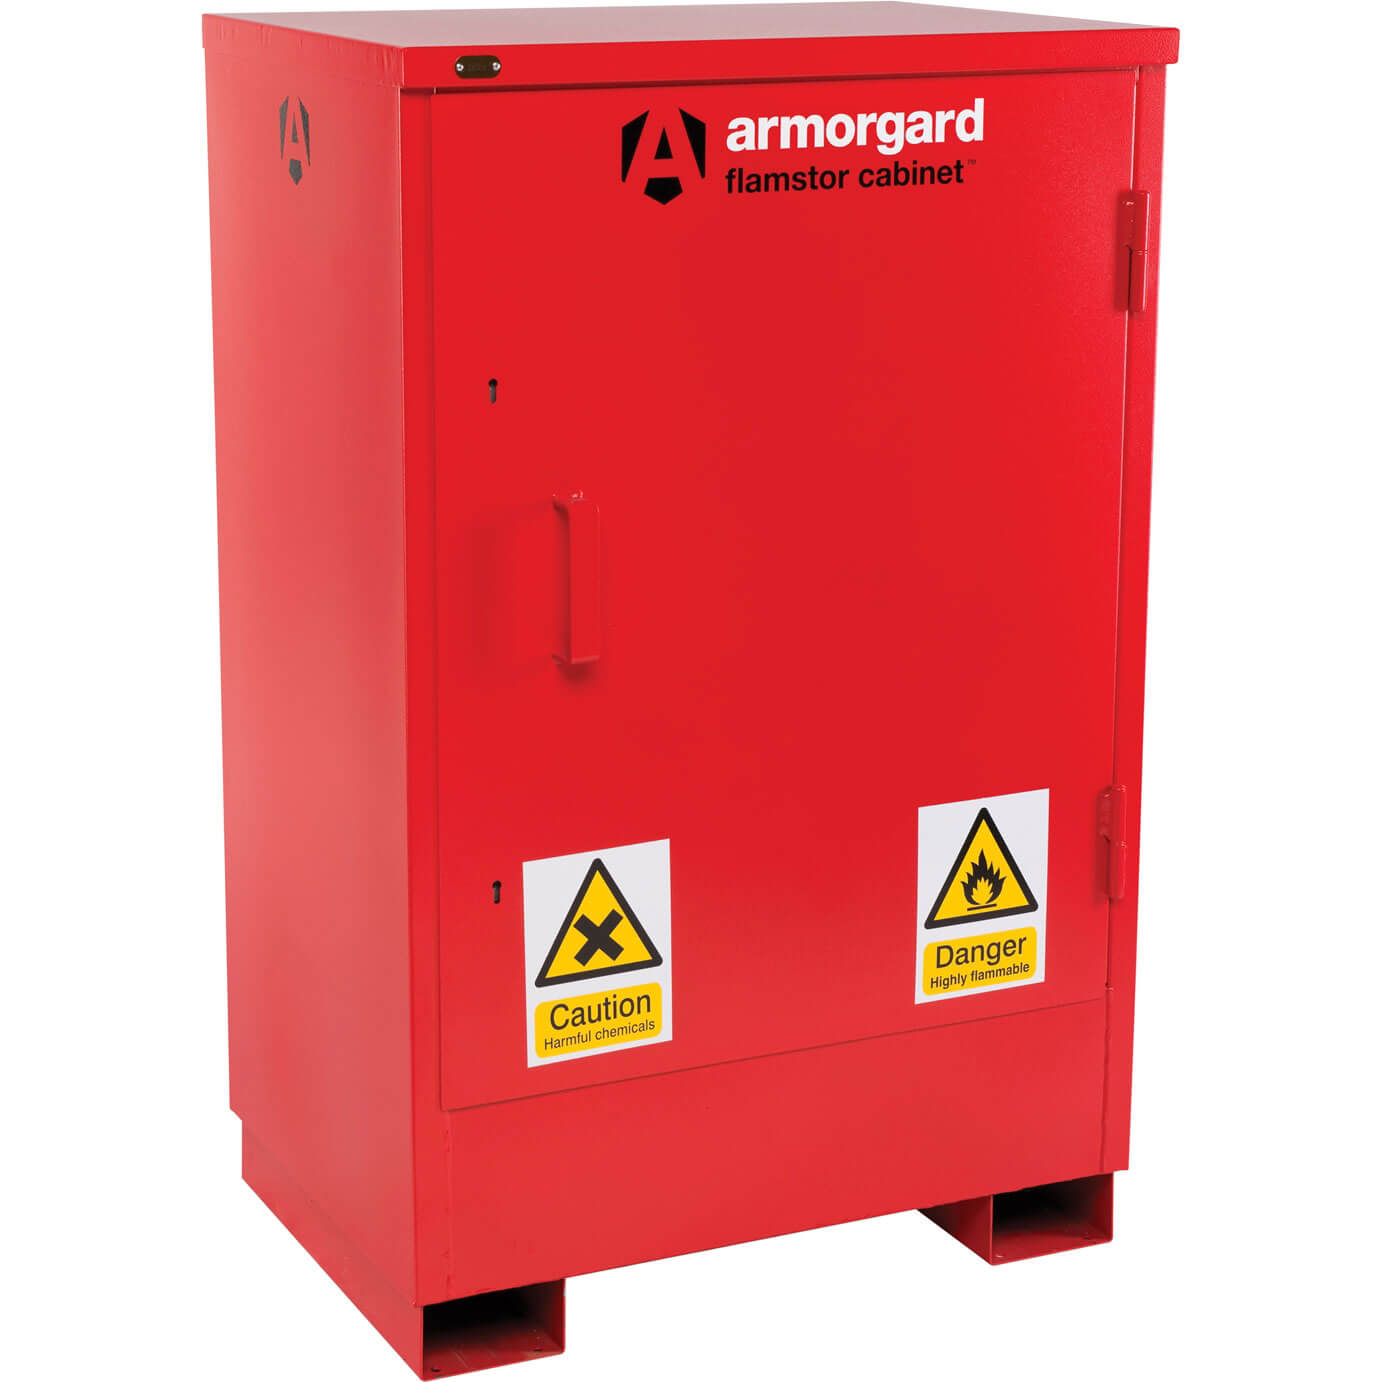 Armorgard Flamstor Chemical & Flammables Storage Cabinet 80cm x 55cm x 120cm